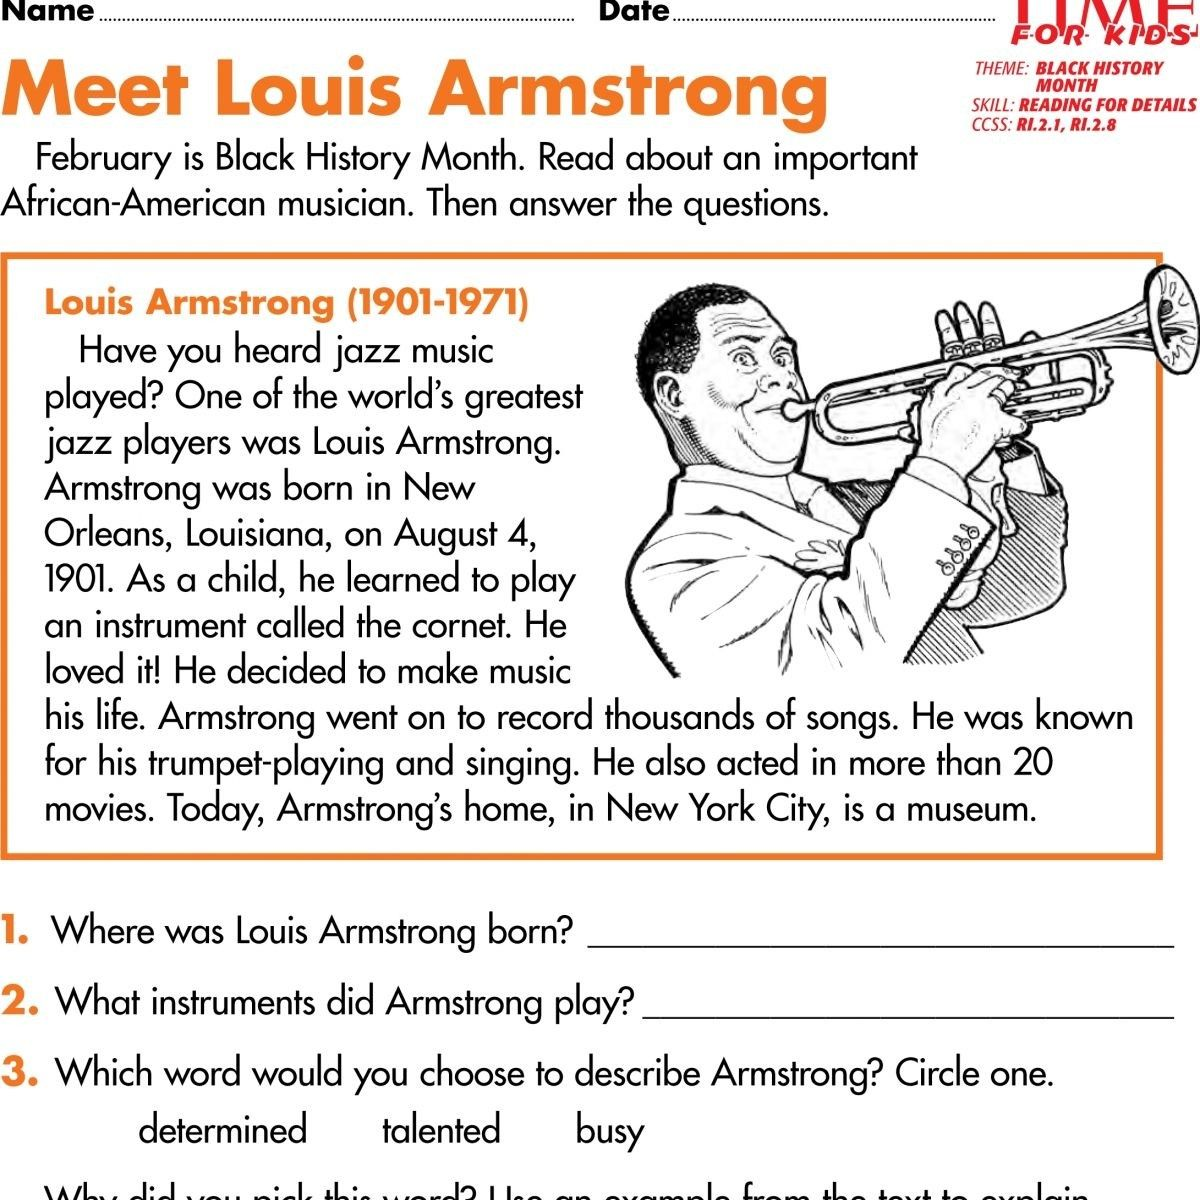 medium resolution of 25+ Exclusive Image of February Coloring Pages - davemelillo.com   Black  history month worksheets